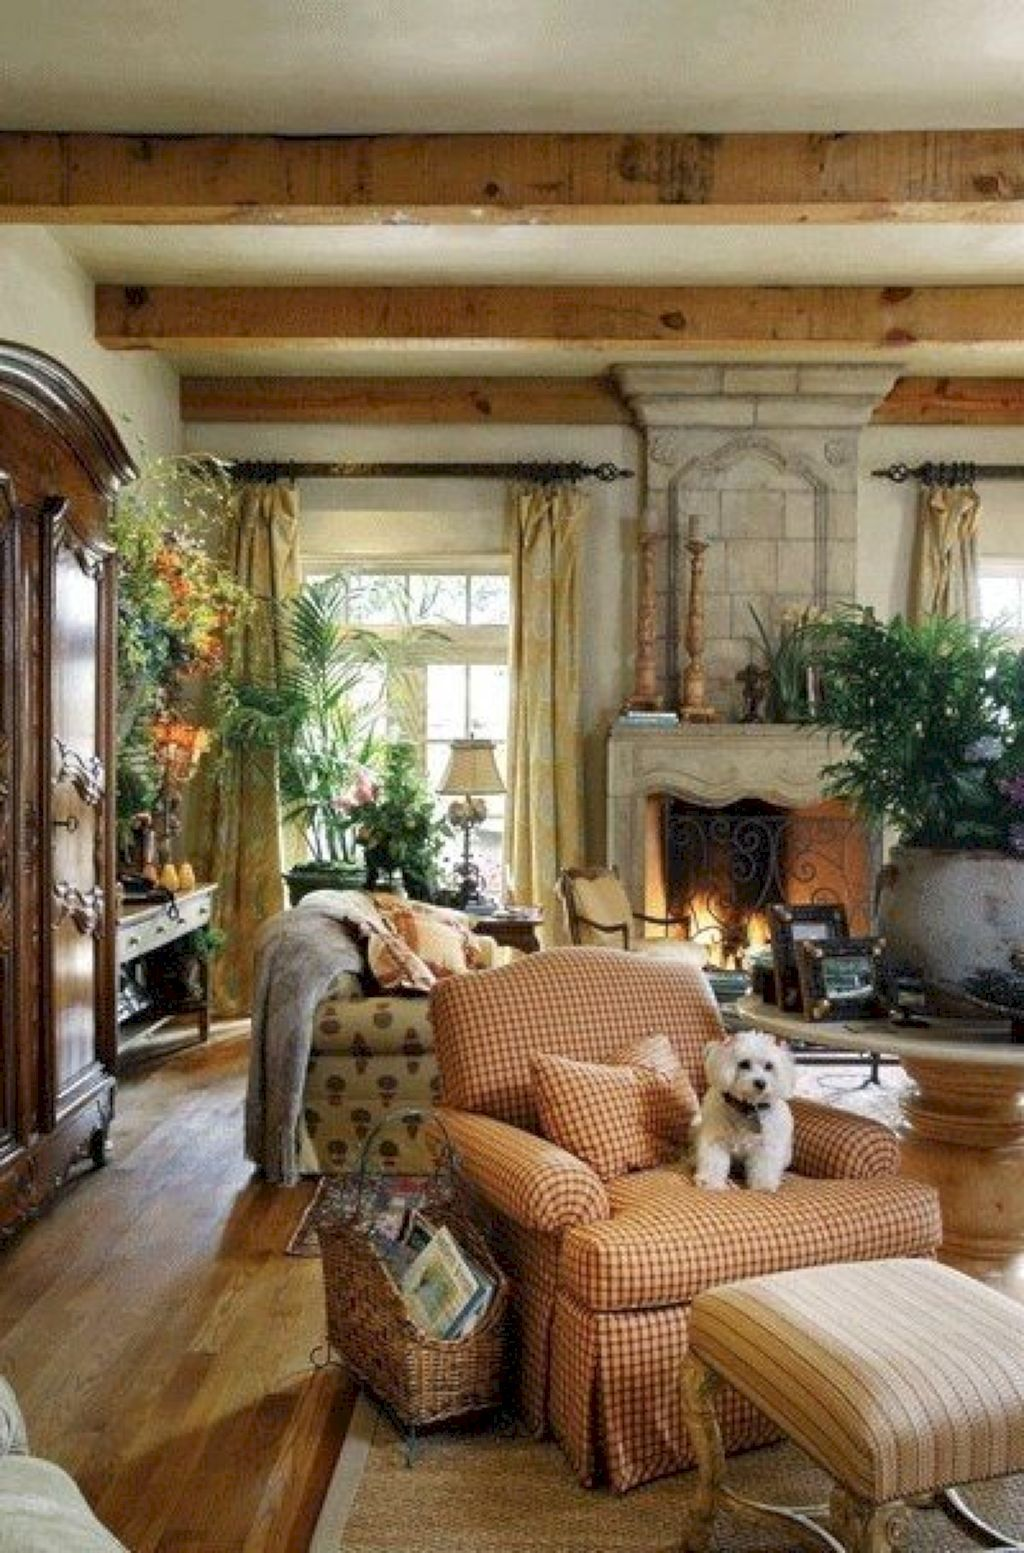 Archway and colors | Country living room design, French ...